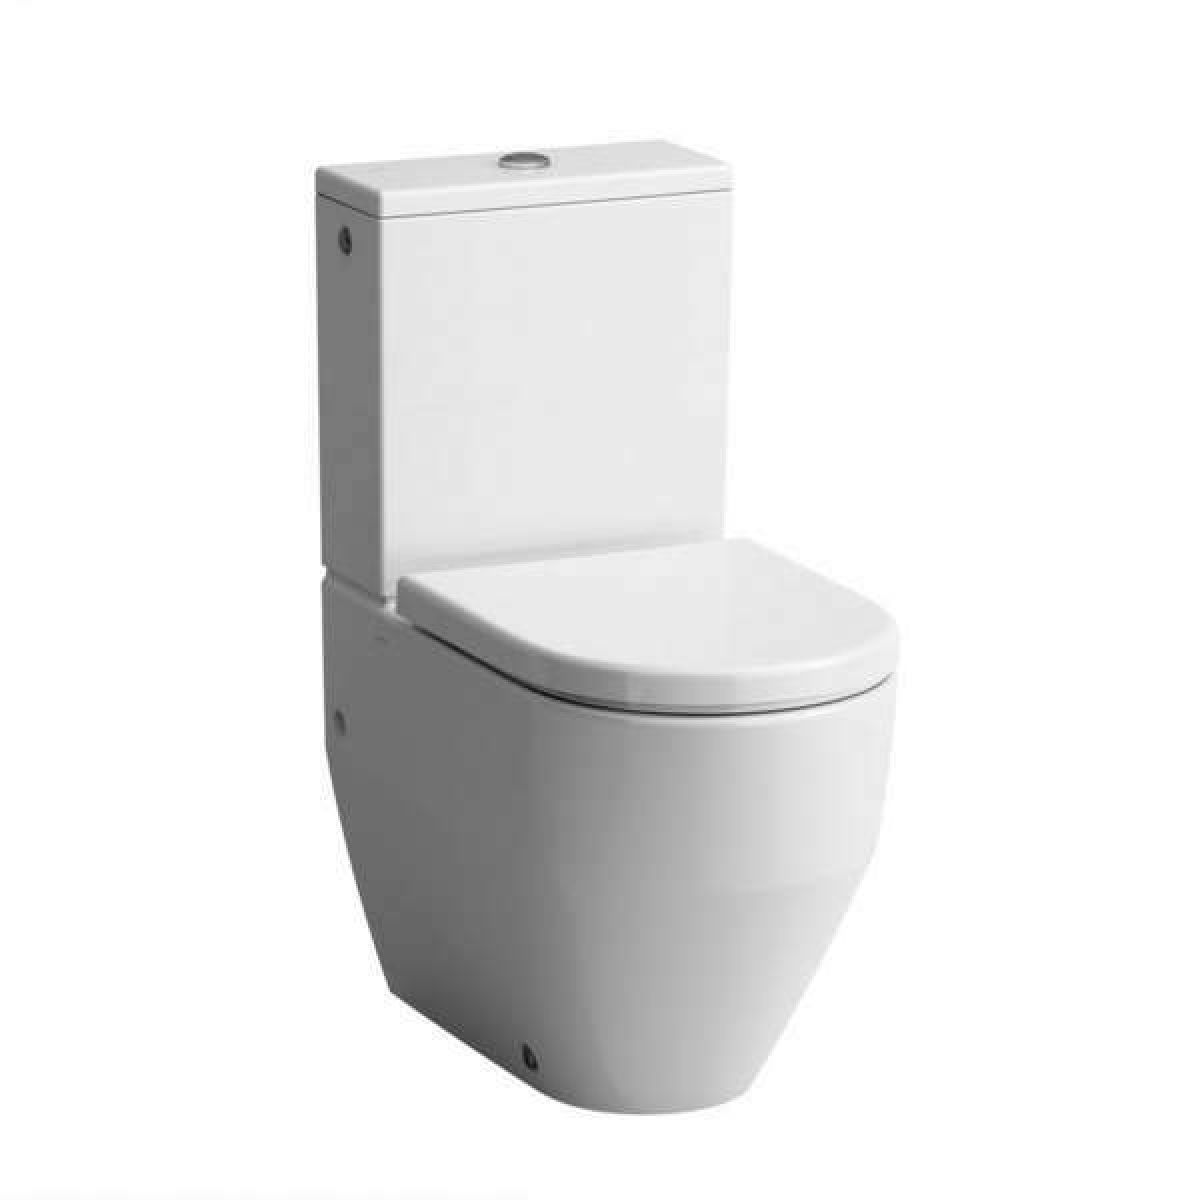 laufen pro close coupled fully back to wall toilet uk. Black Bedroom Furniture Sets. Home Design Ideas